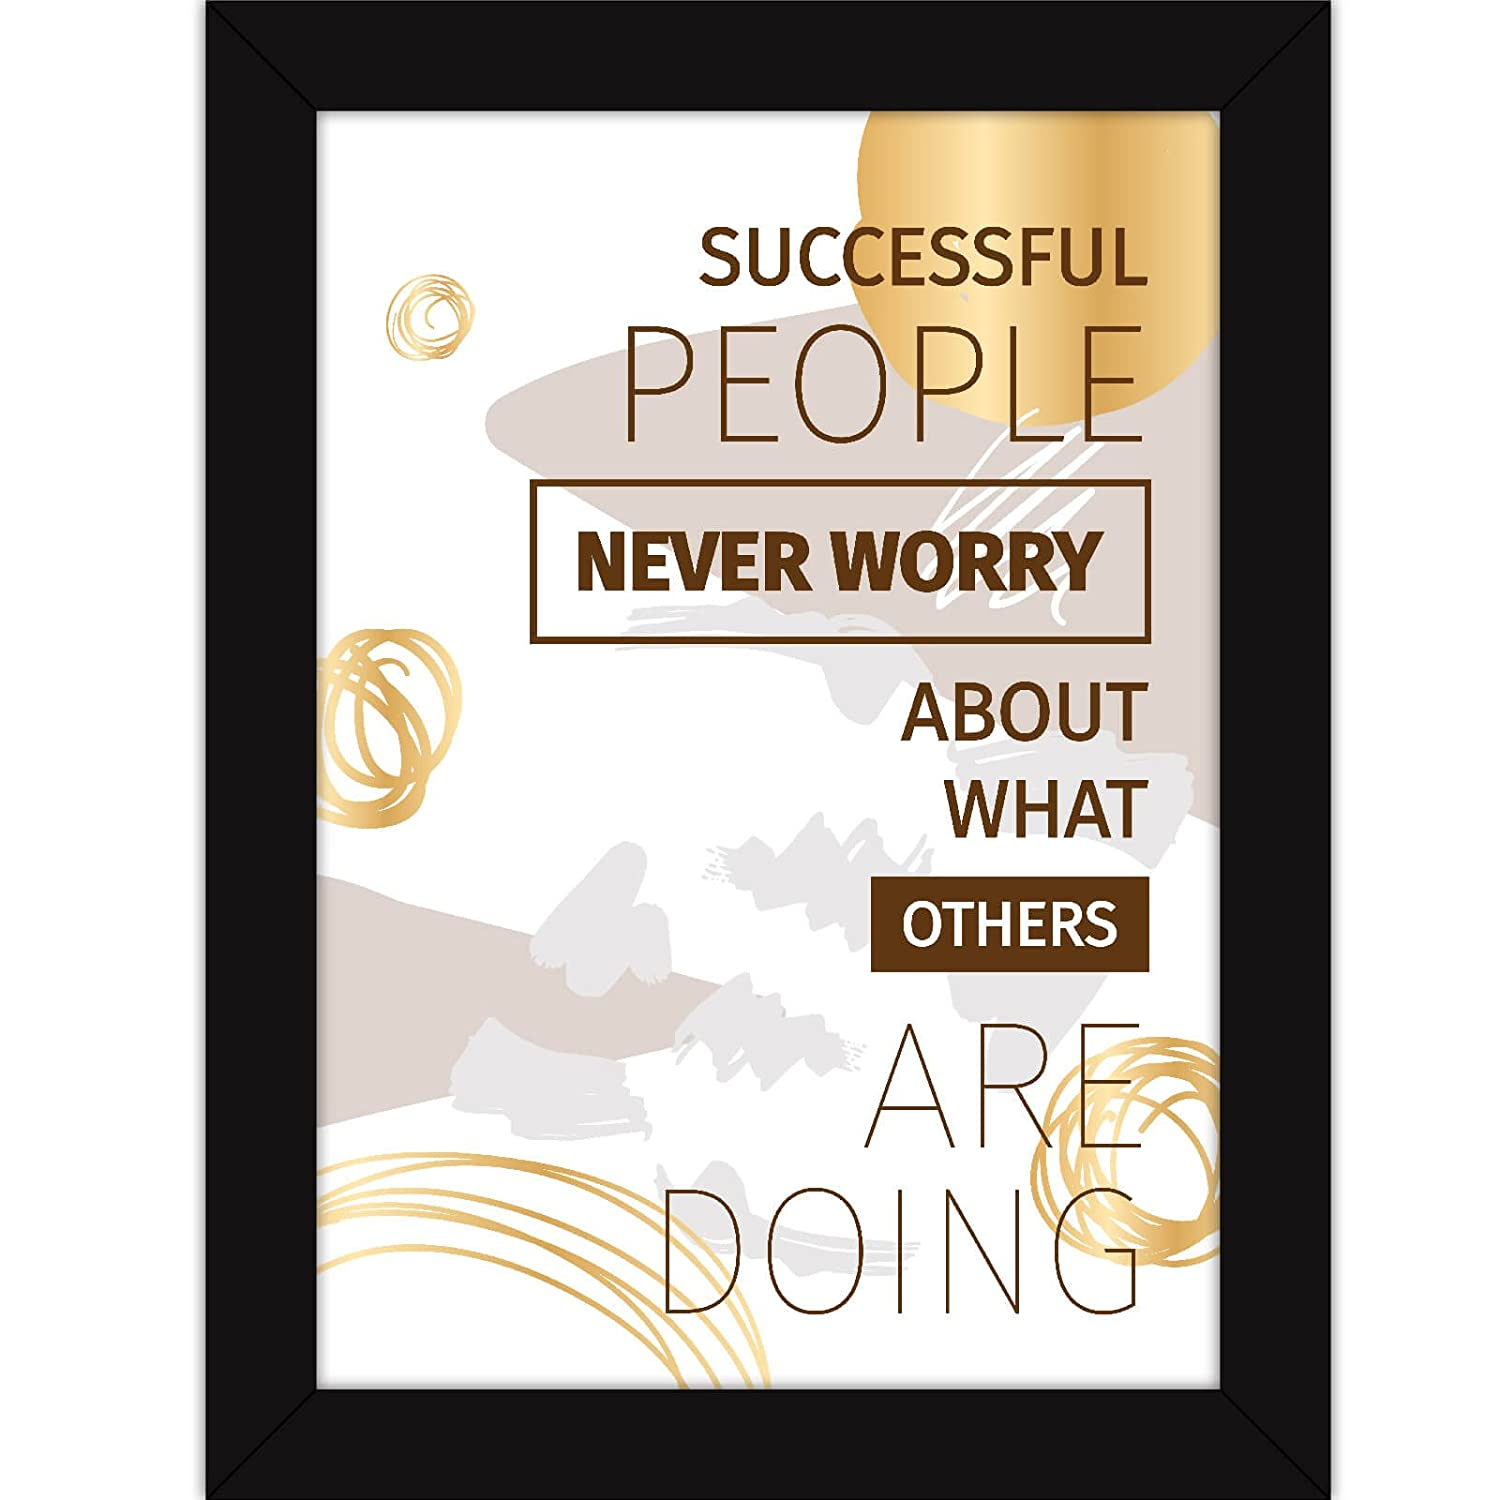 Office Quotes - Inspirational Posters With Frames For Room Decor And Wall Hanging - Successful